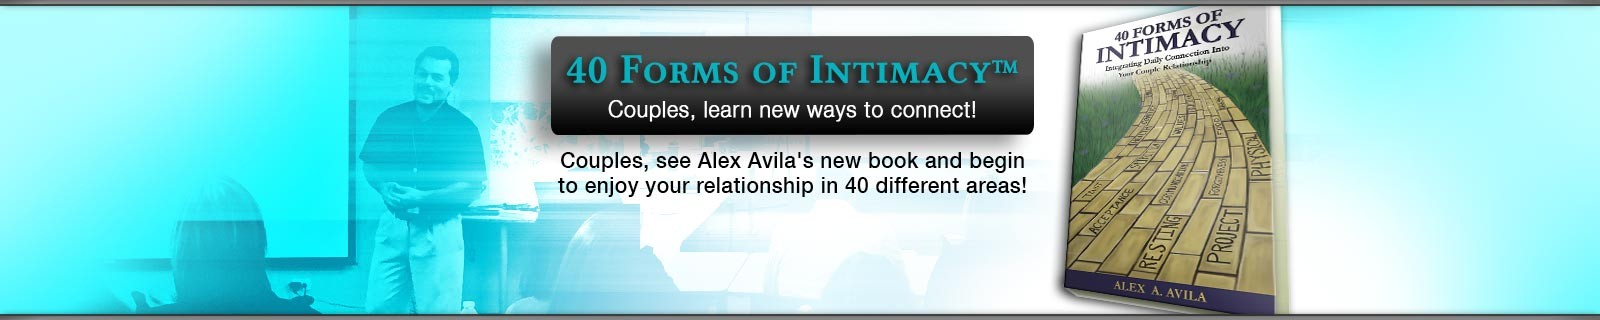 40 Forms of Intimacy® Book & Couple Retreats